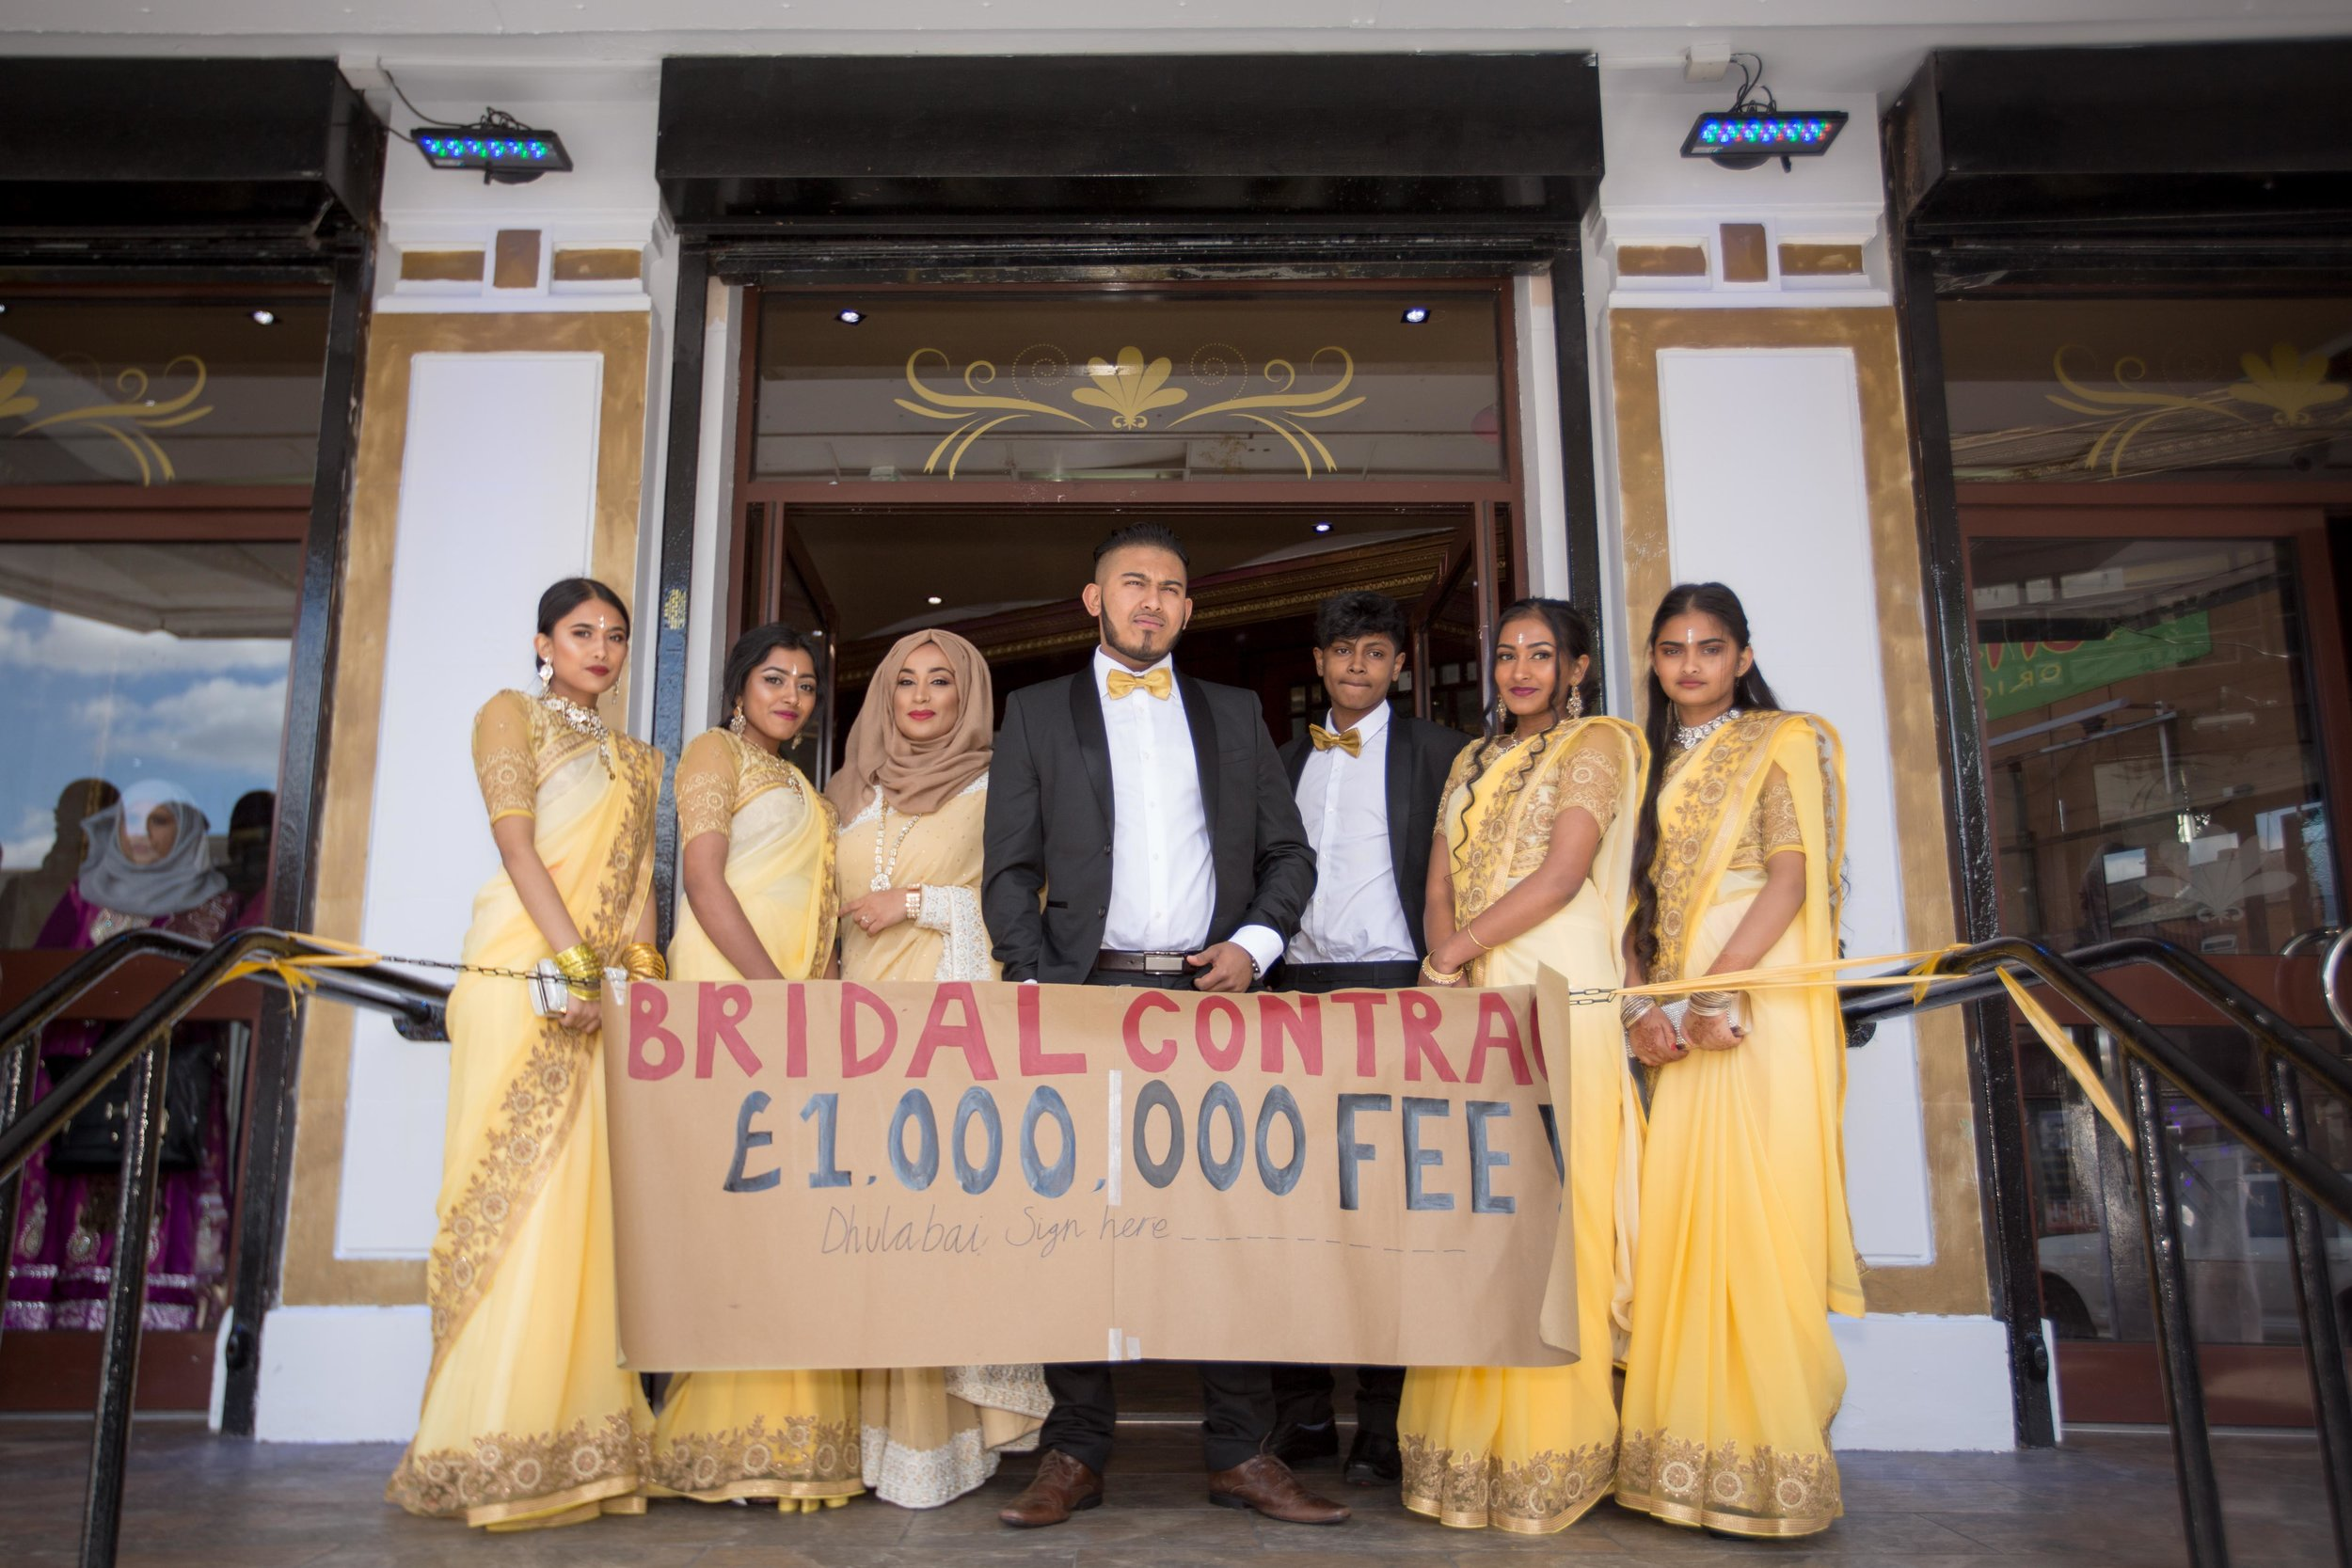 Female-Asian-Piccadilly-banqueting-suite-Wedding-Photographer-Birmingham-natalia-smith-photography-11.jpg